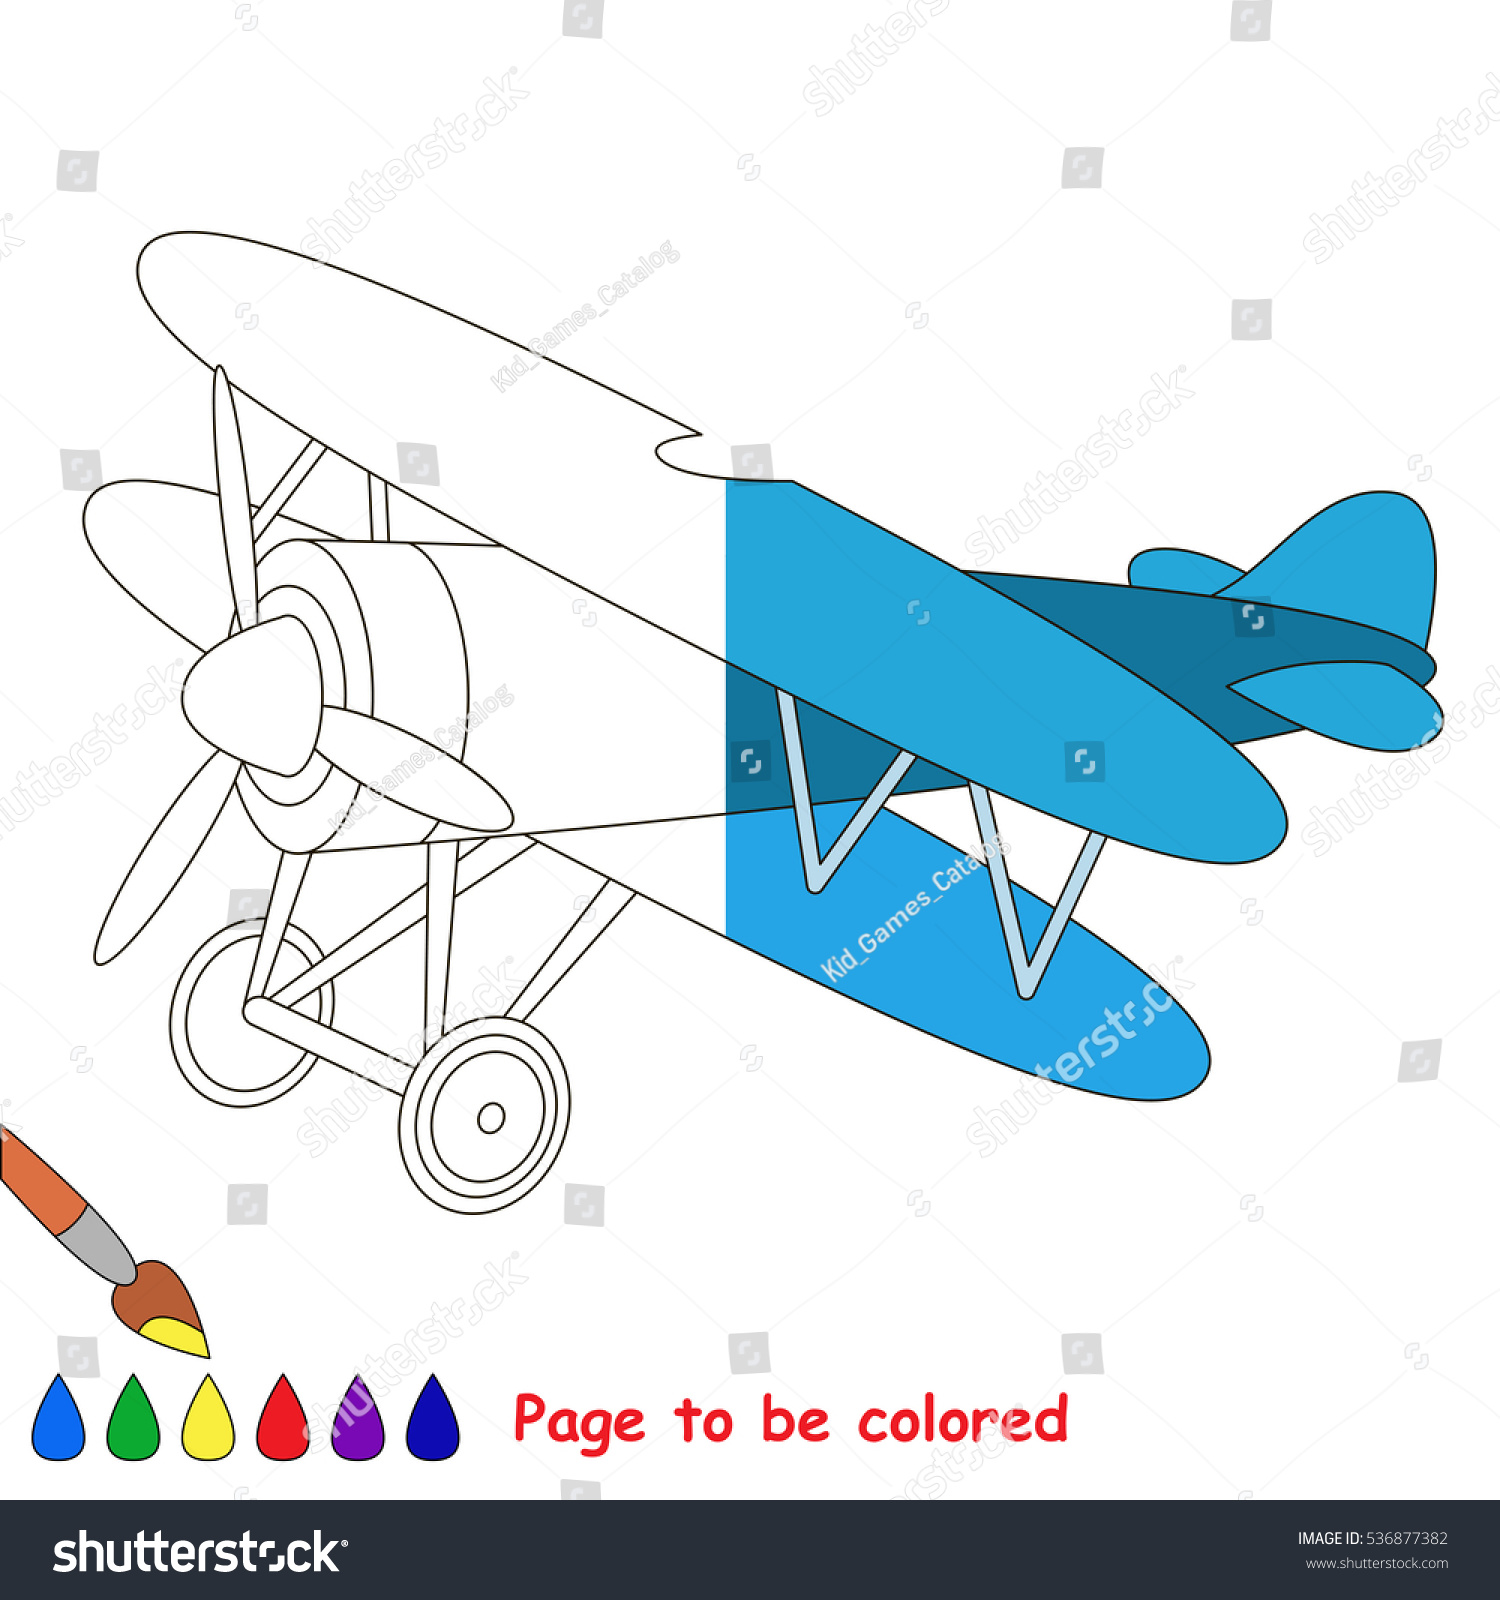 Airplane Be Colored Coloring Book Educate Stock Vector